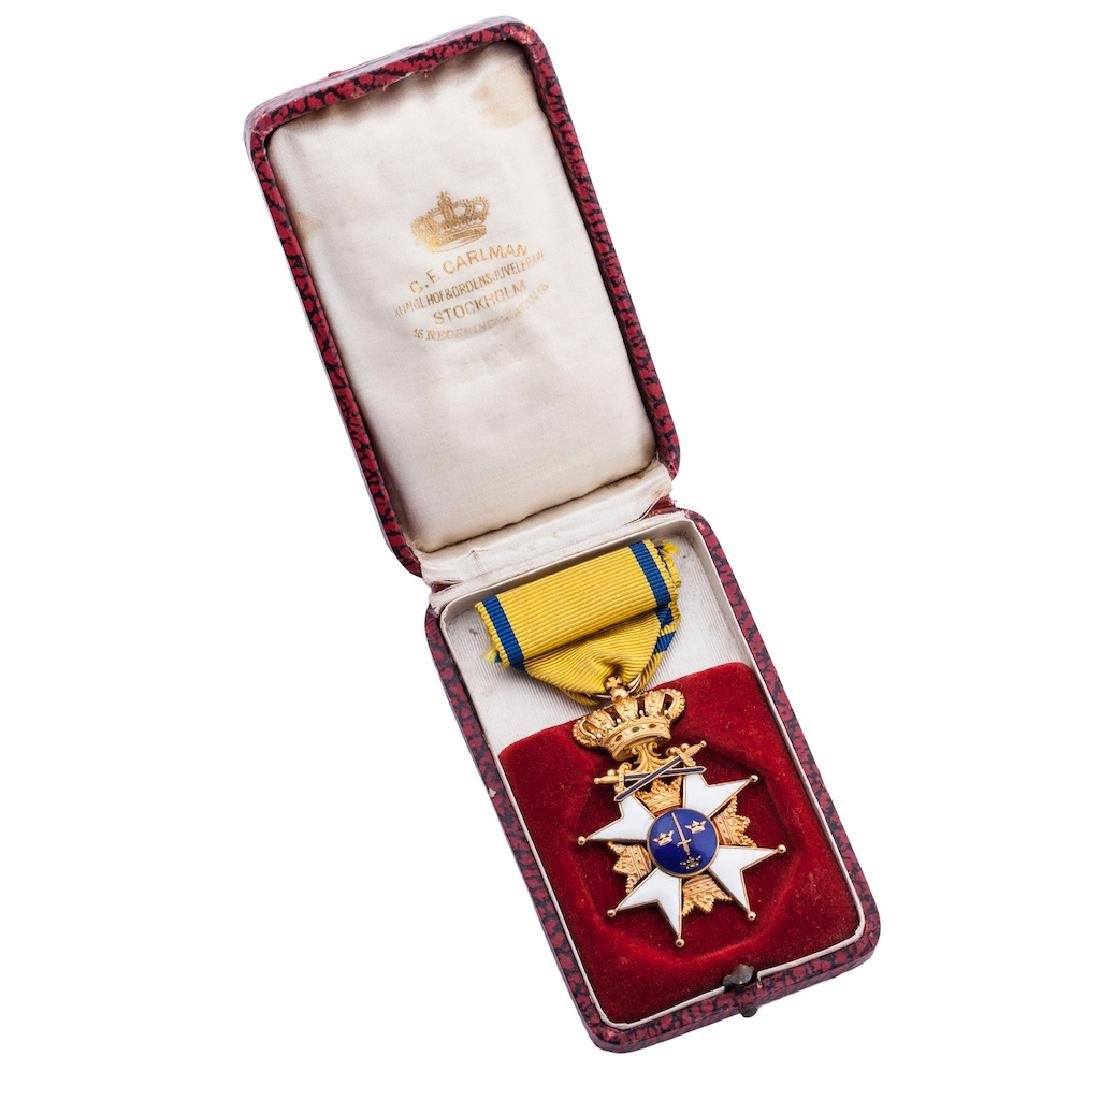 Order of the Sword, 1st Class Knight